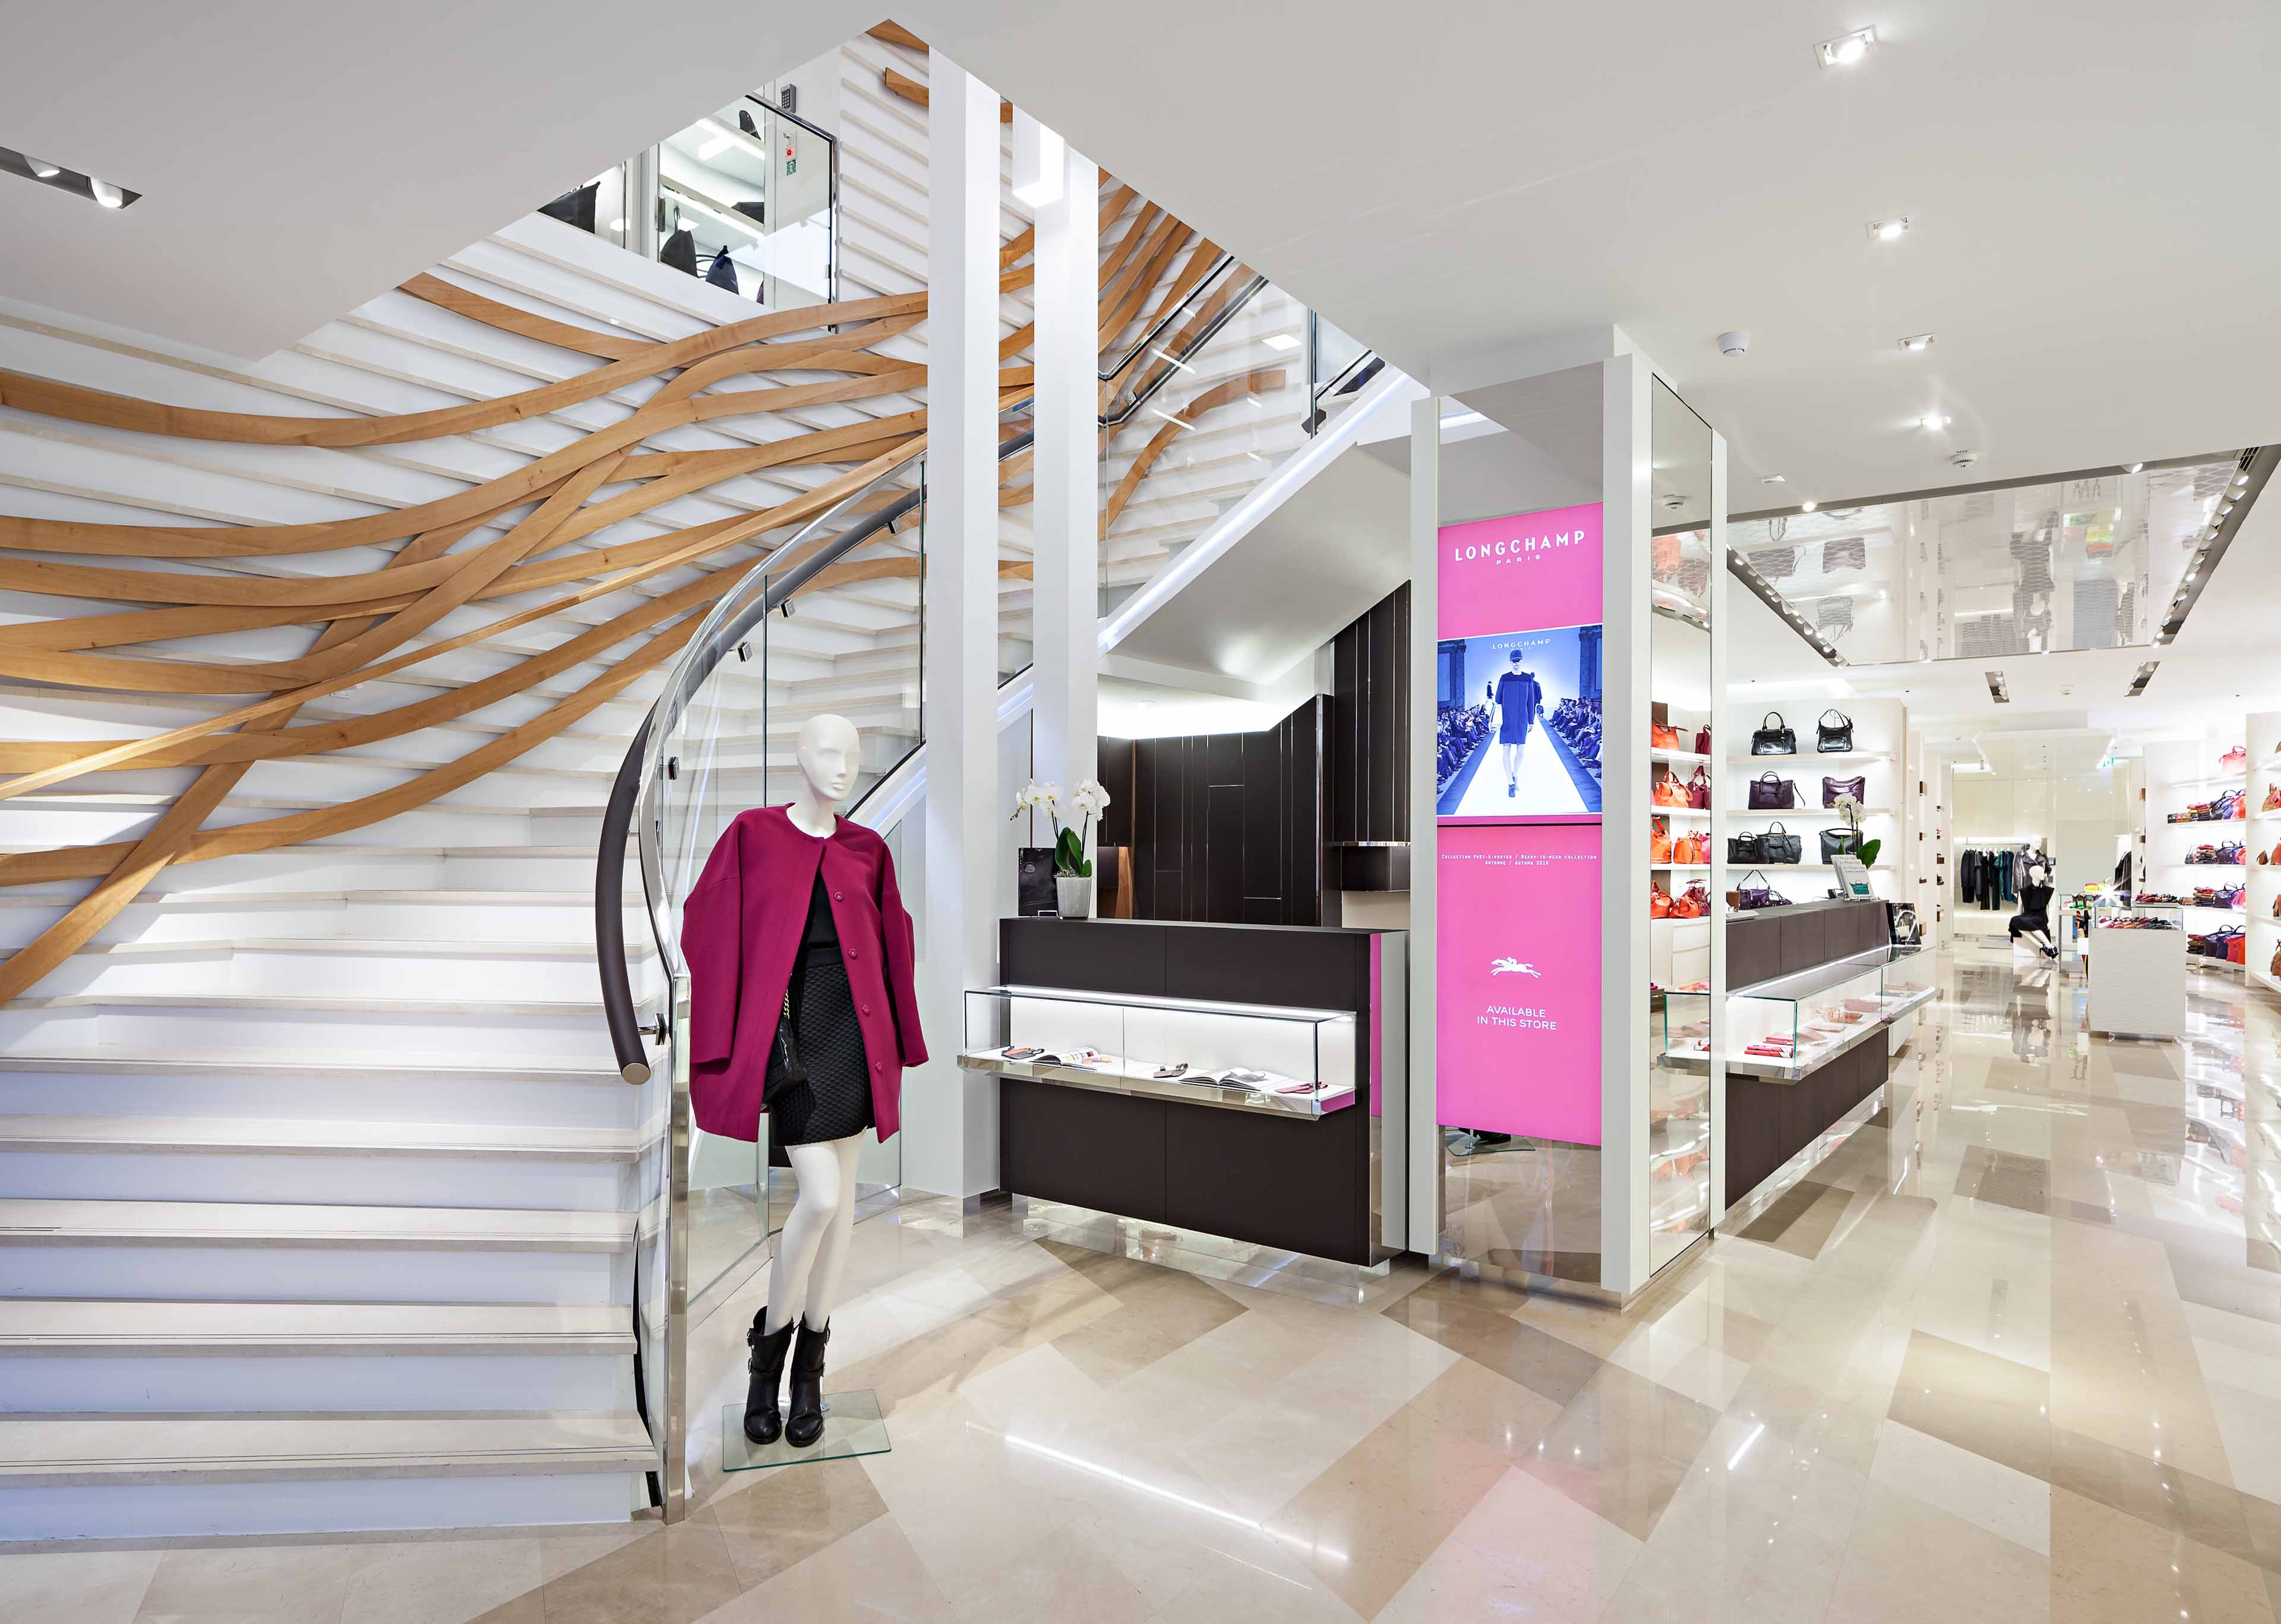 ganter-reference-retail-longchamp-munich2